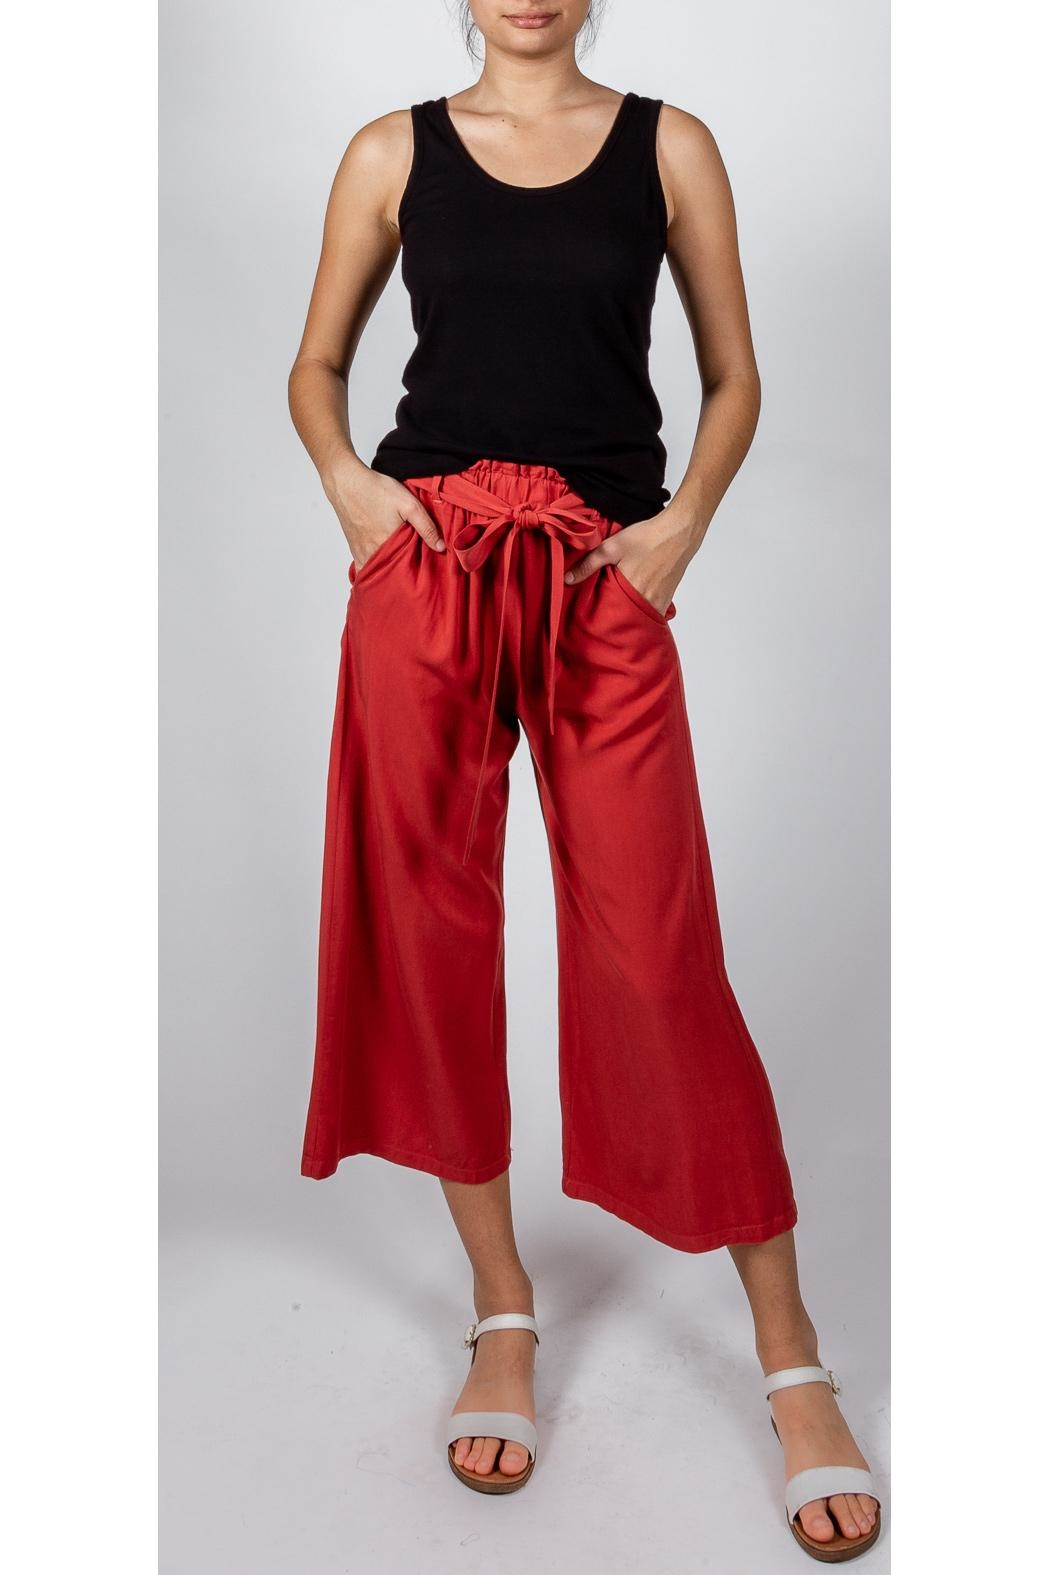 Lovetree Tie Waist Pant - Front Cropped Image